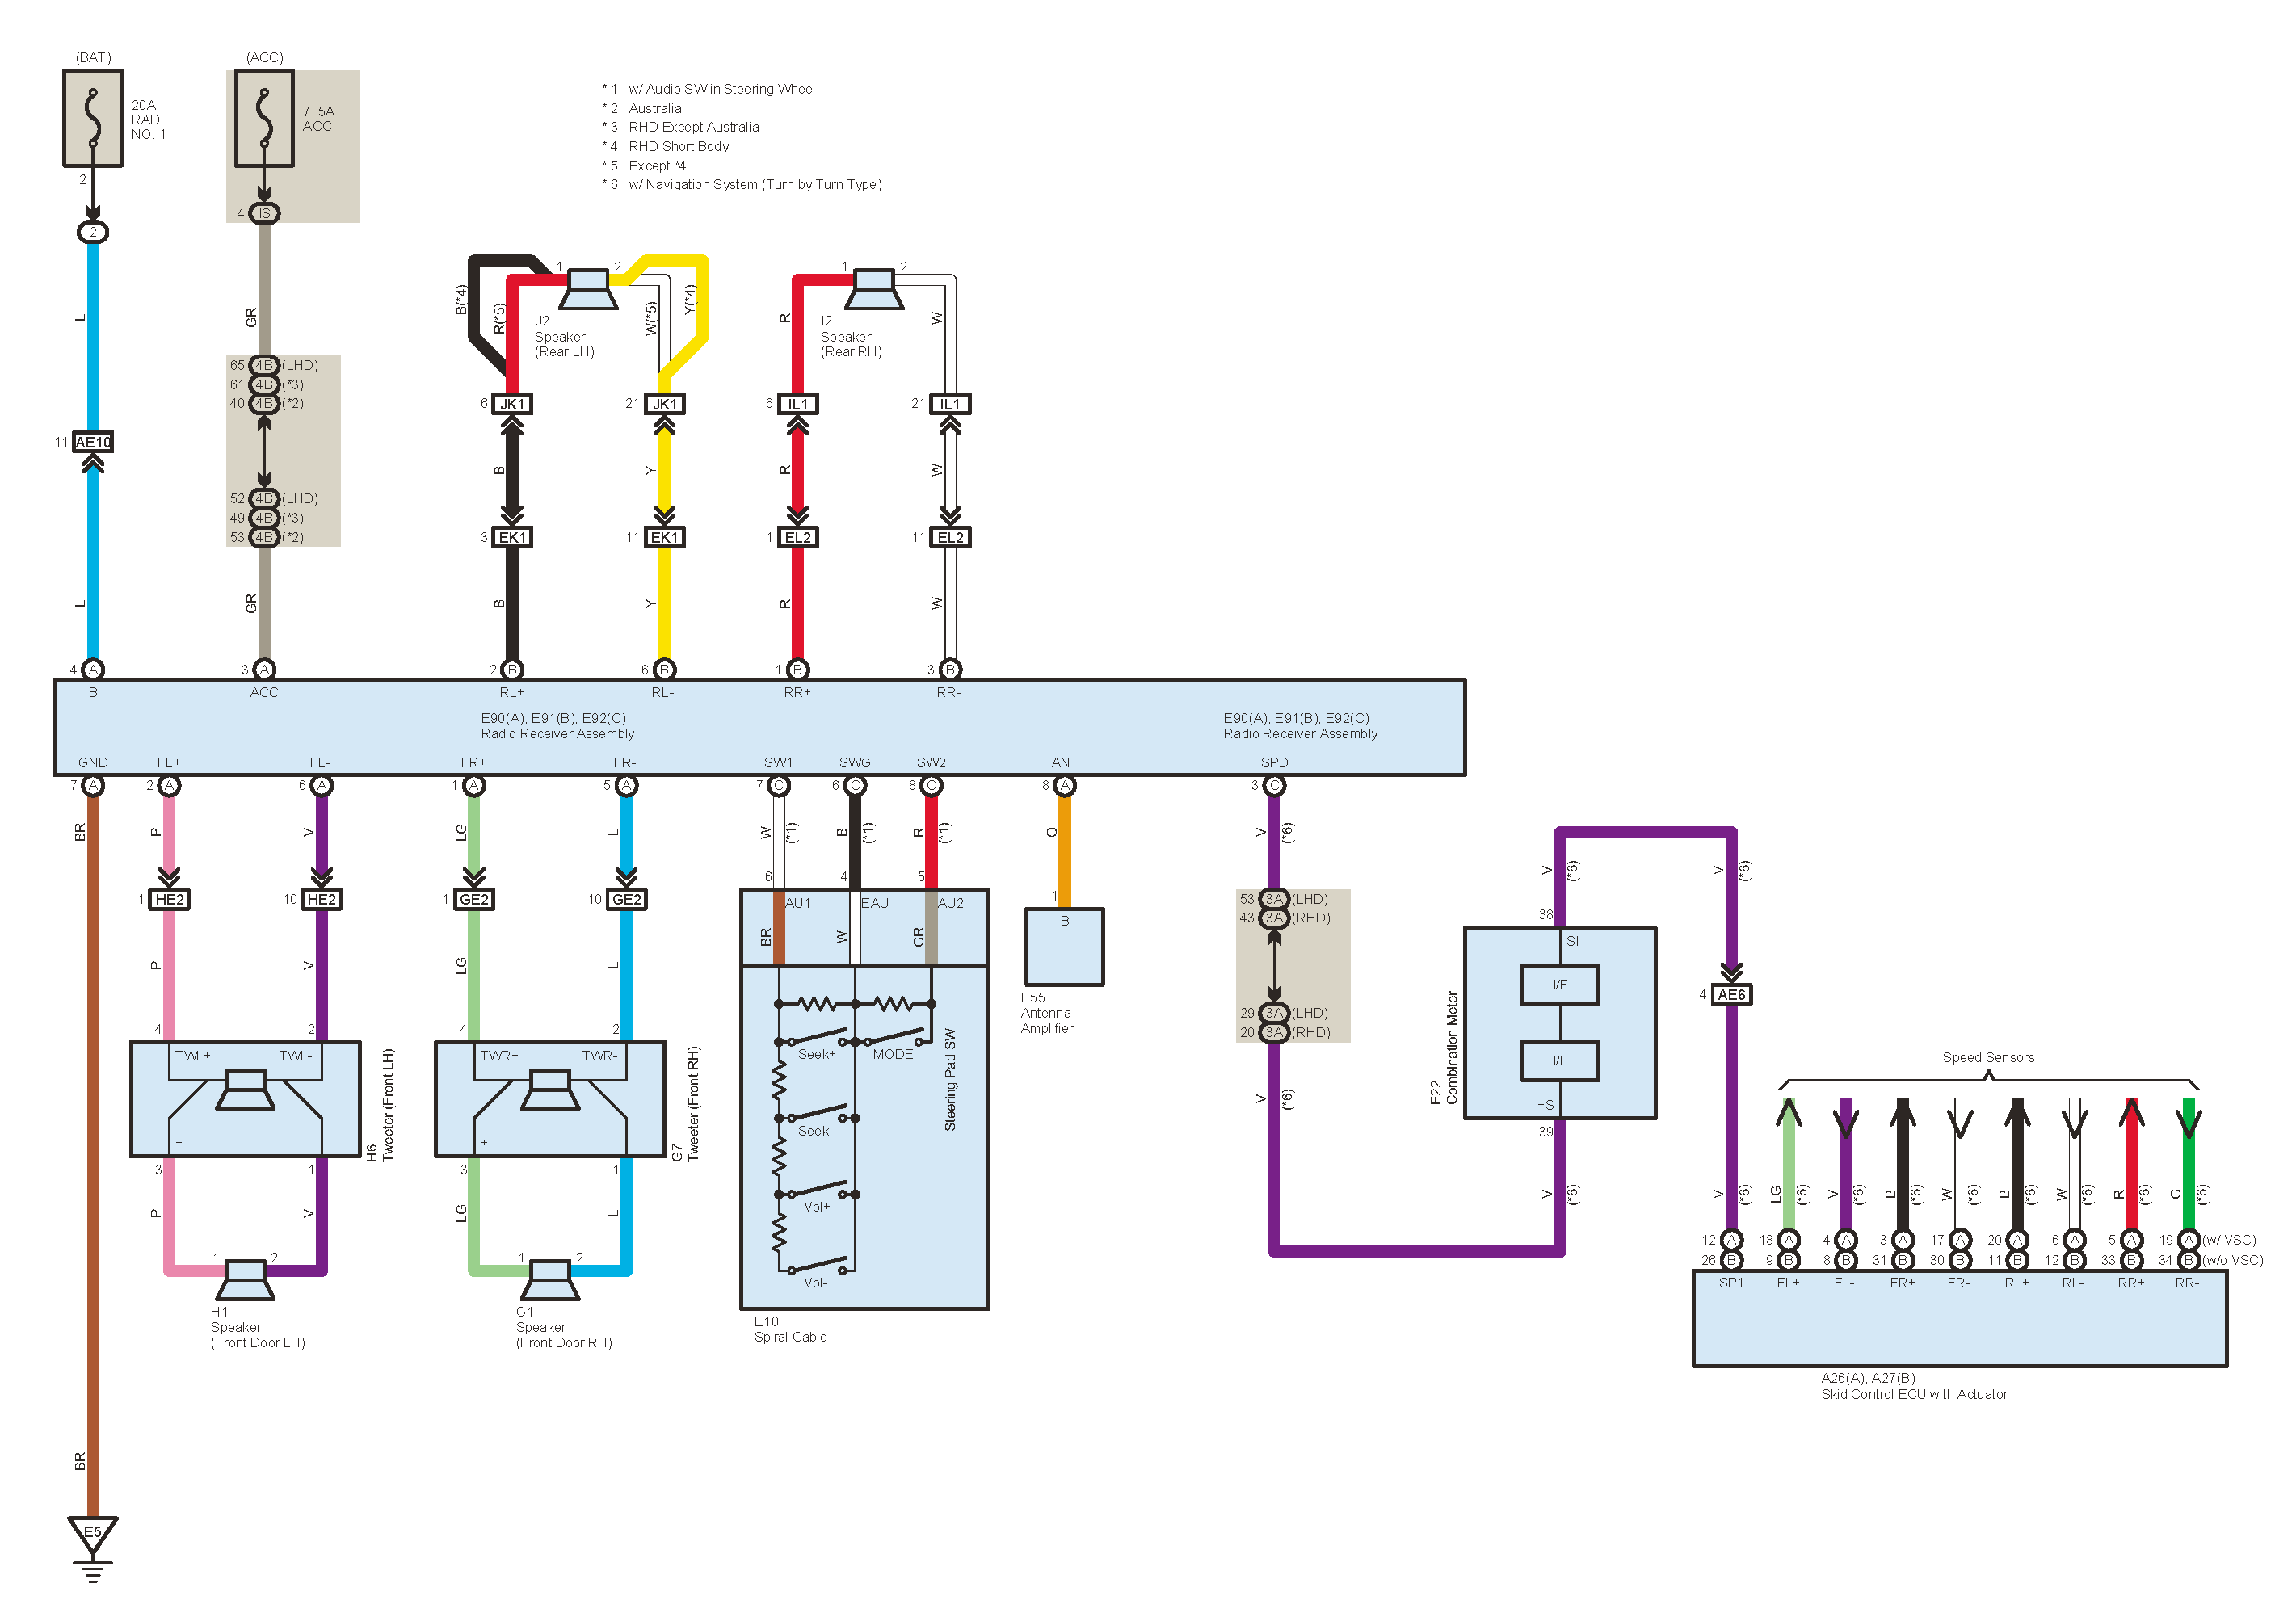 2014 Toyota Venza Radio Wiring Diagram - Schema Wiring Diagrams on